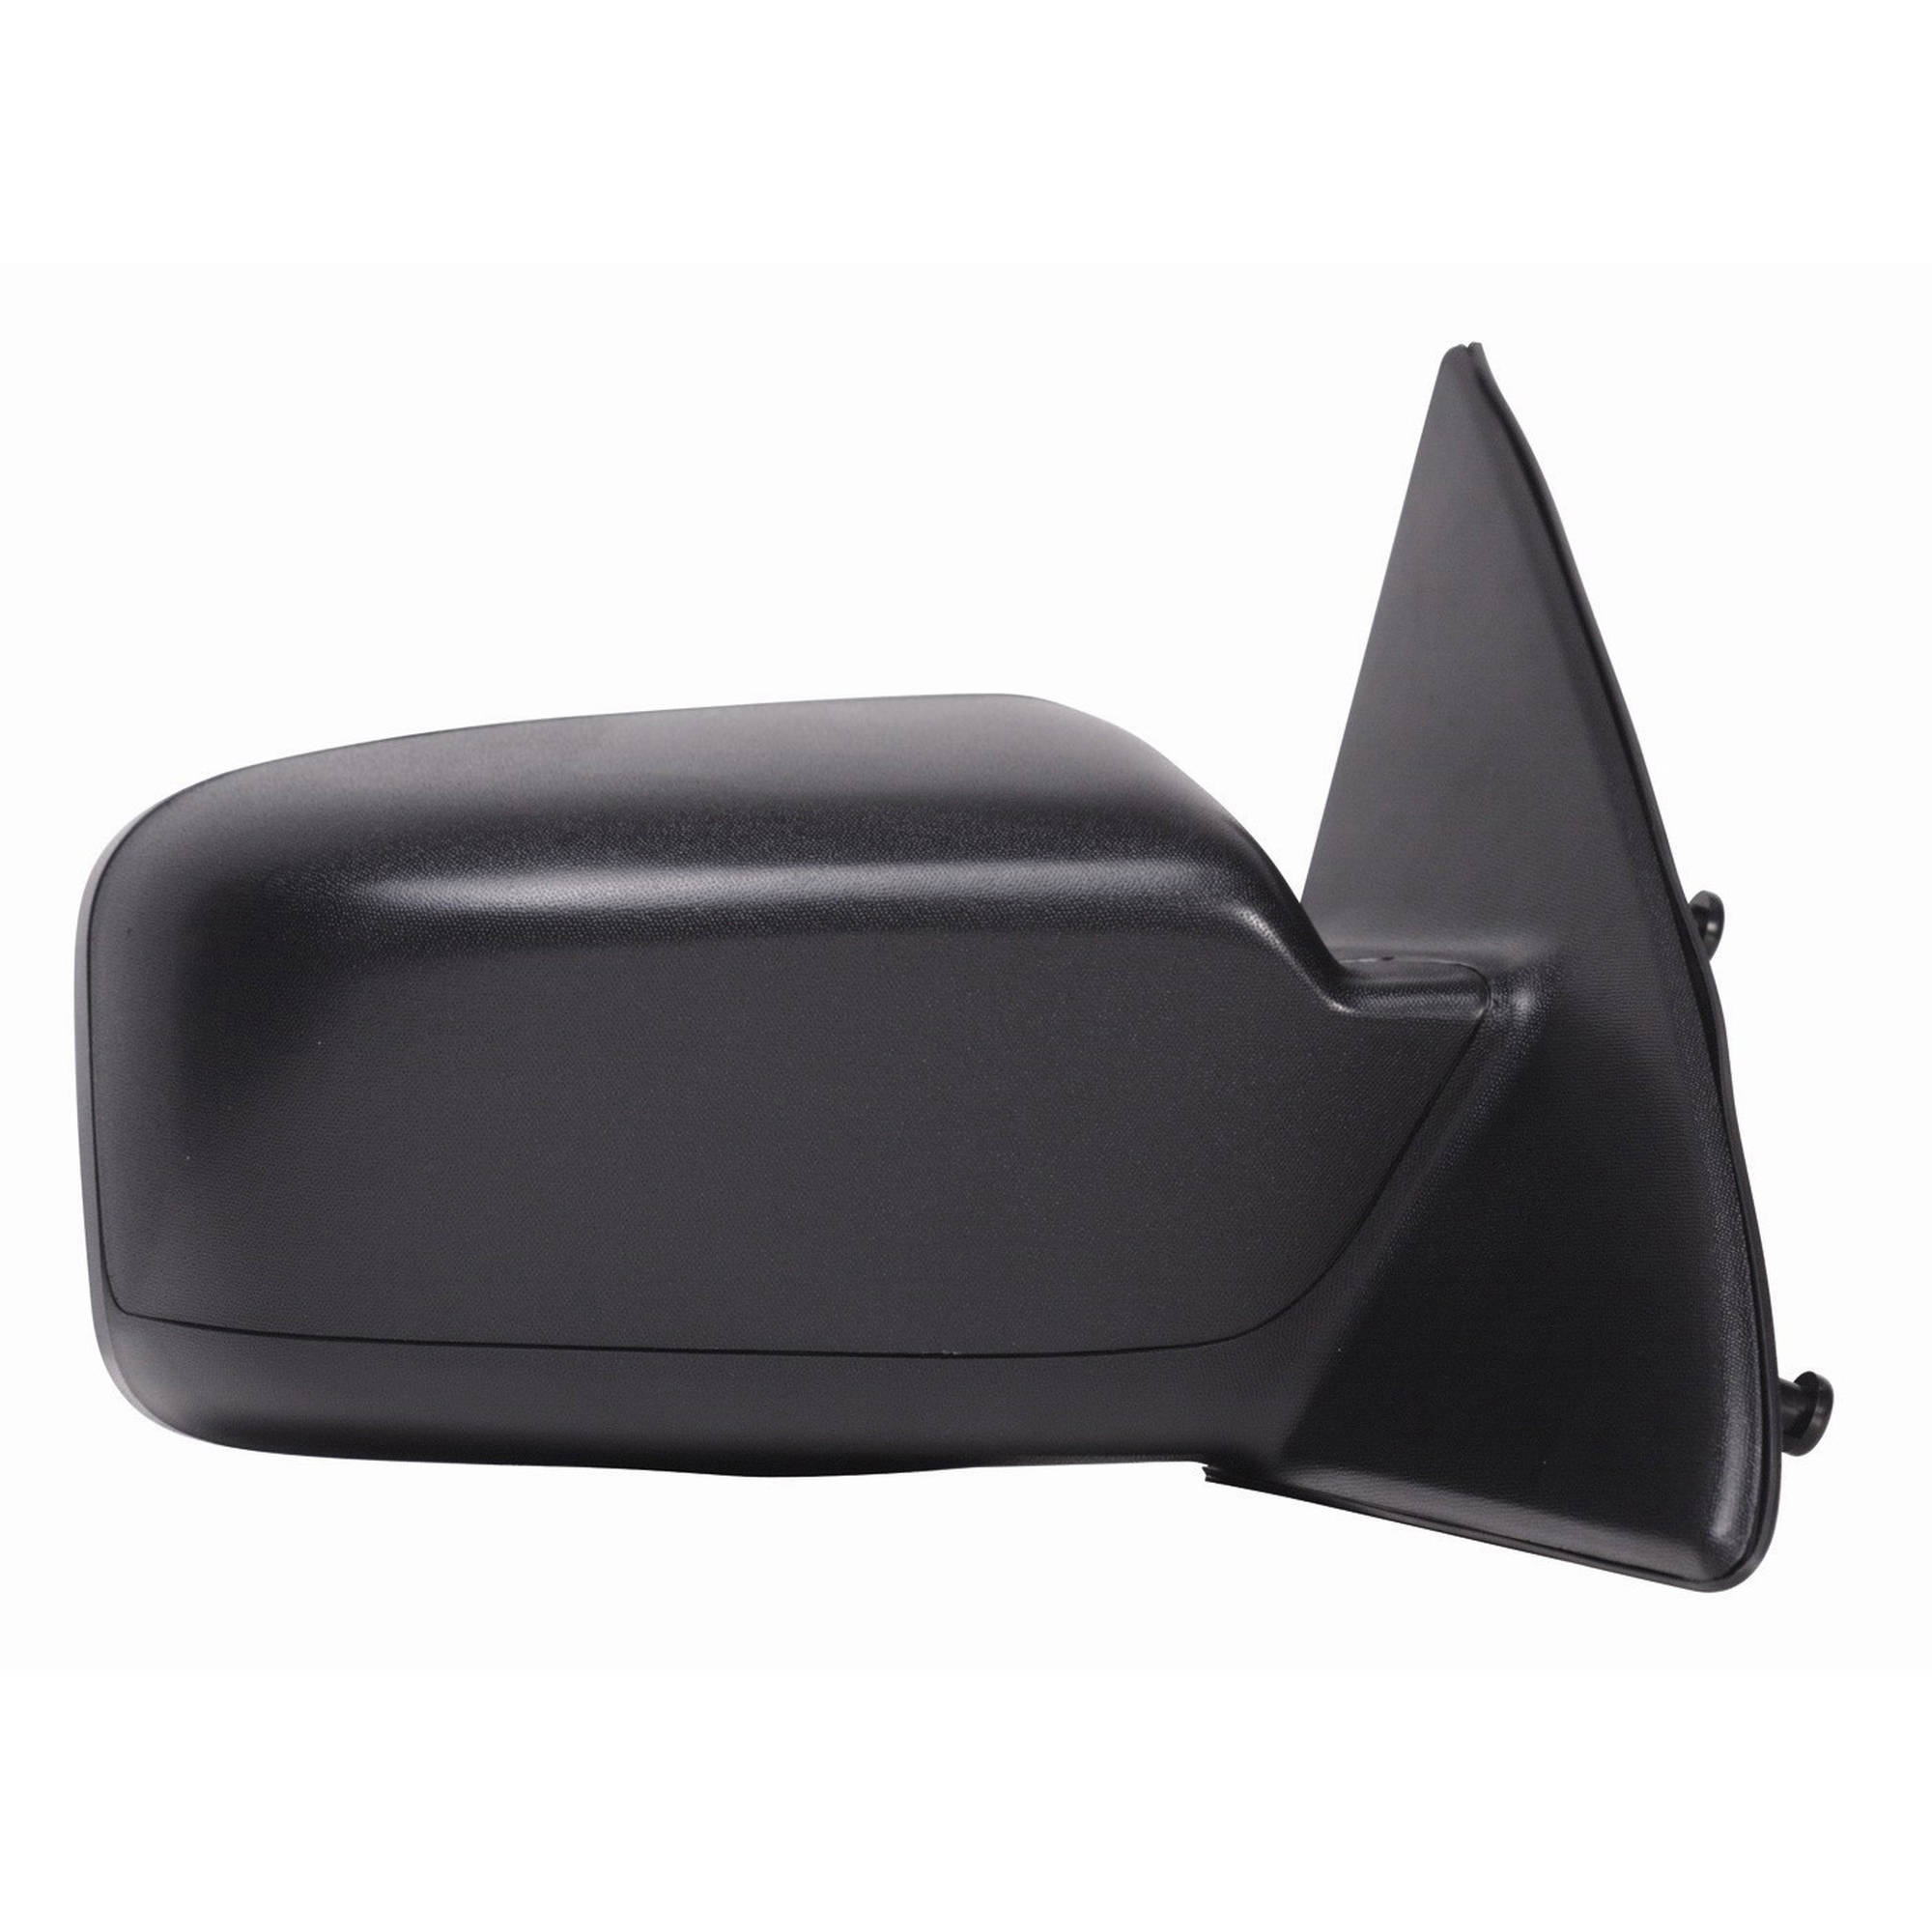 61603F - Fit System 06-12 Ford Fusion, Mercury Milan, foldaway OEM Style Replacement Mirror, Passenger Side - check description for fitment